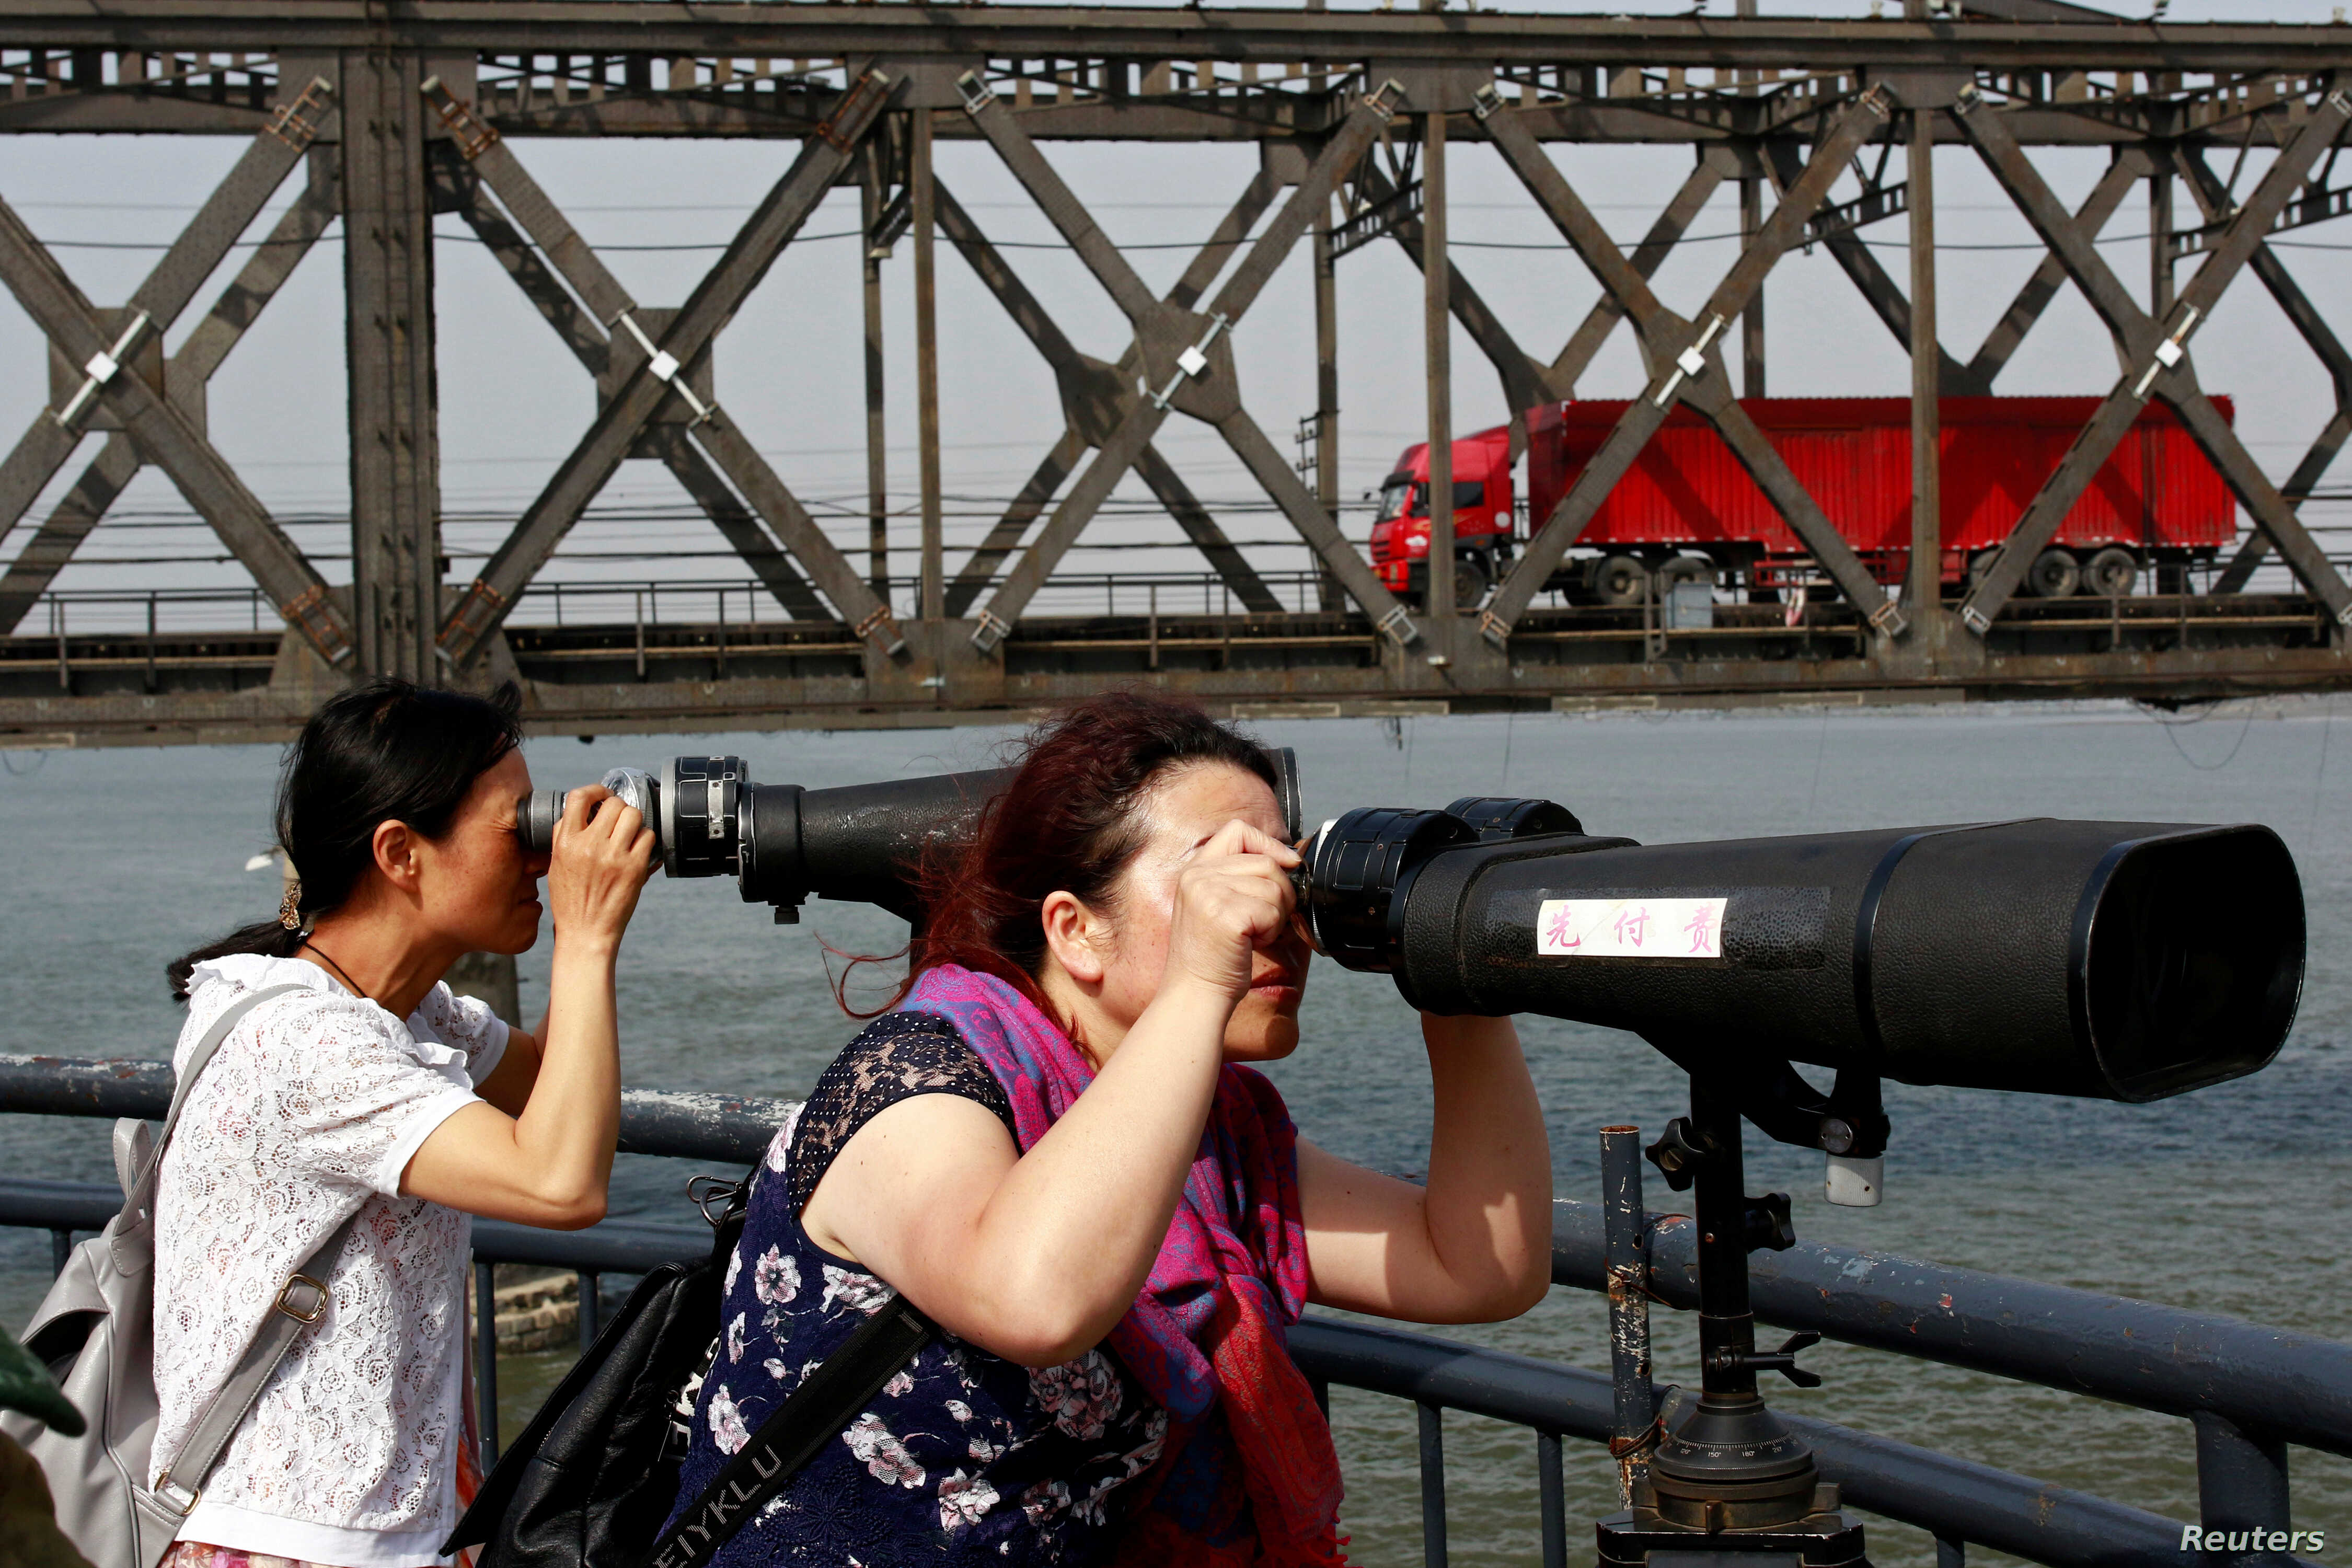 Chinese visitors look through binoculars towards North Korea from the Broken Bridge, as a truck crosses the Friendship Bridge on the Yalu river from Sinuiju, North Korea to Dandong, Liaoning province, China, May 24, 2018.